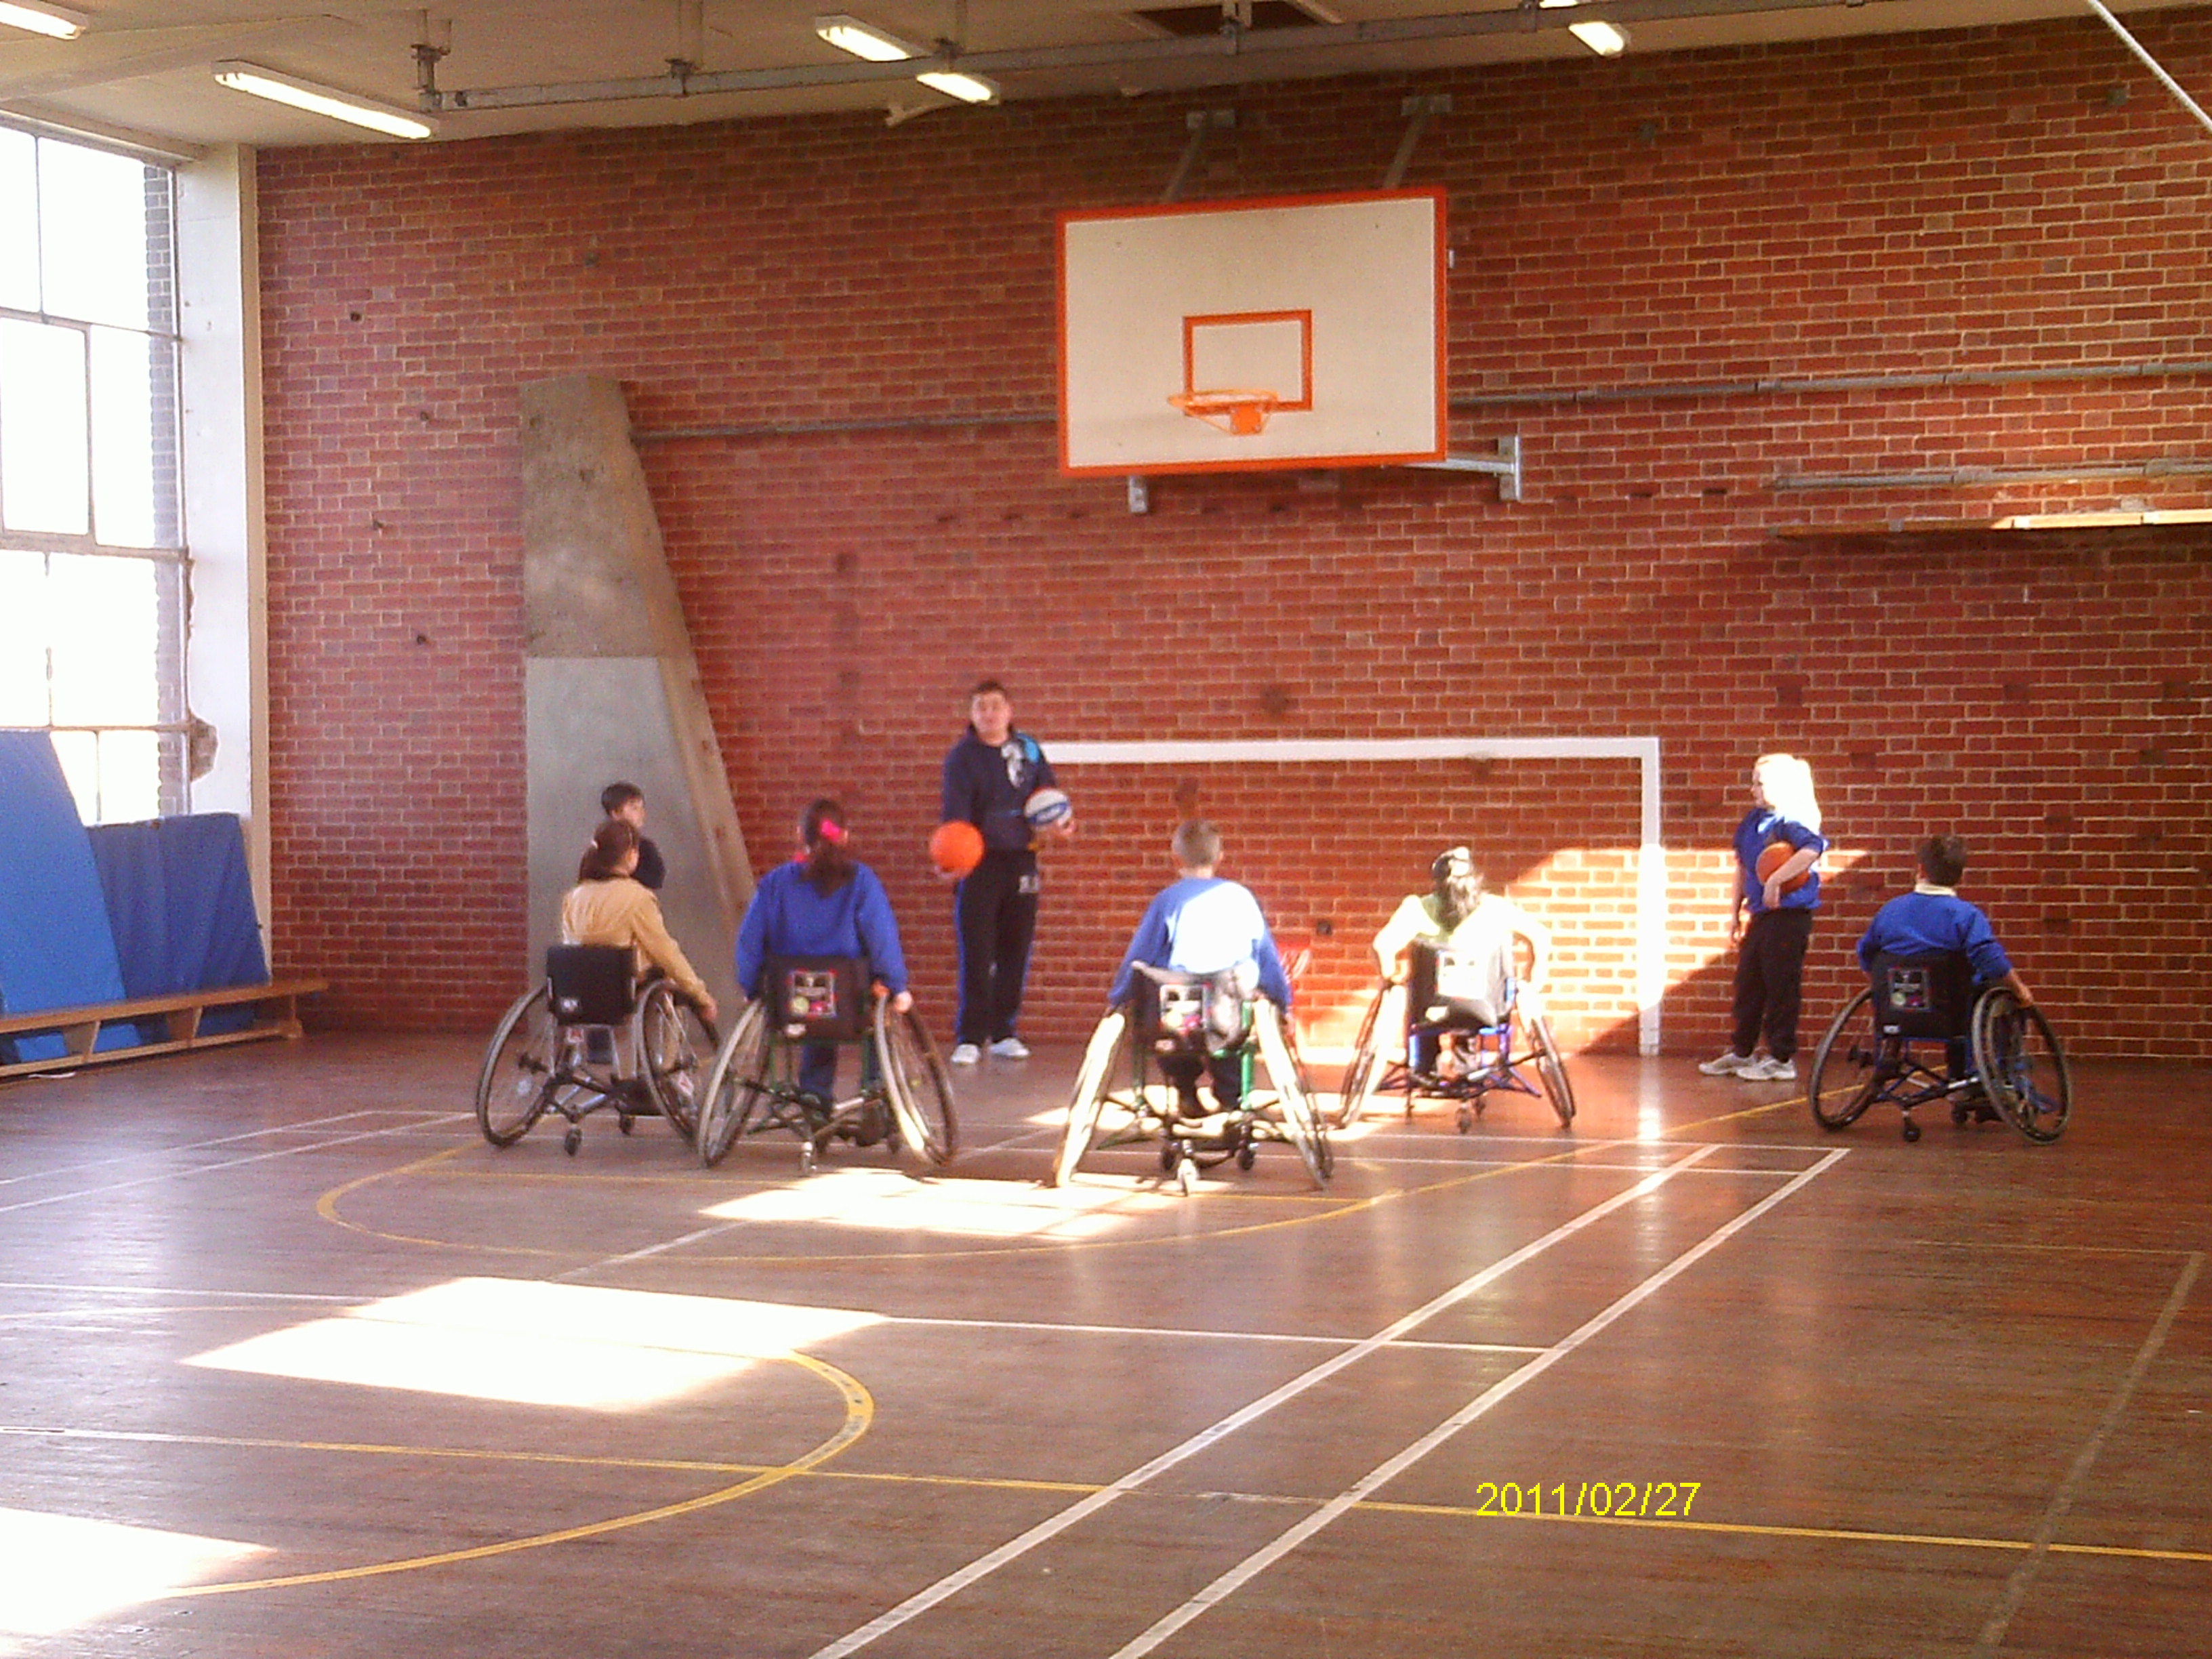 A typical outreach session showing the ropes of basketball and also educating on disability